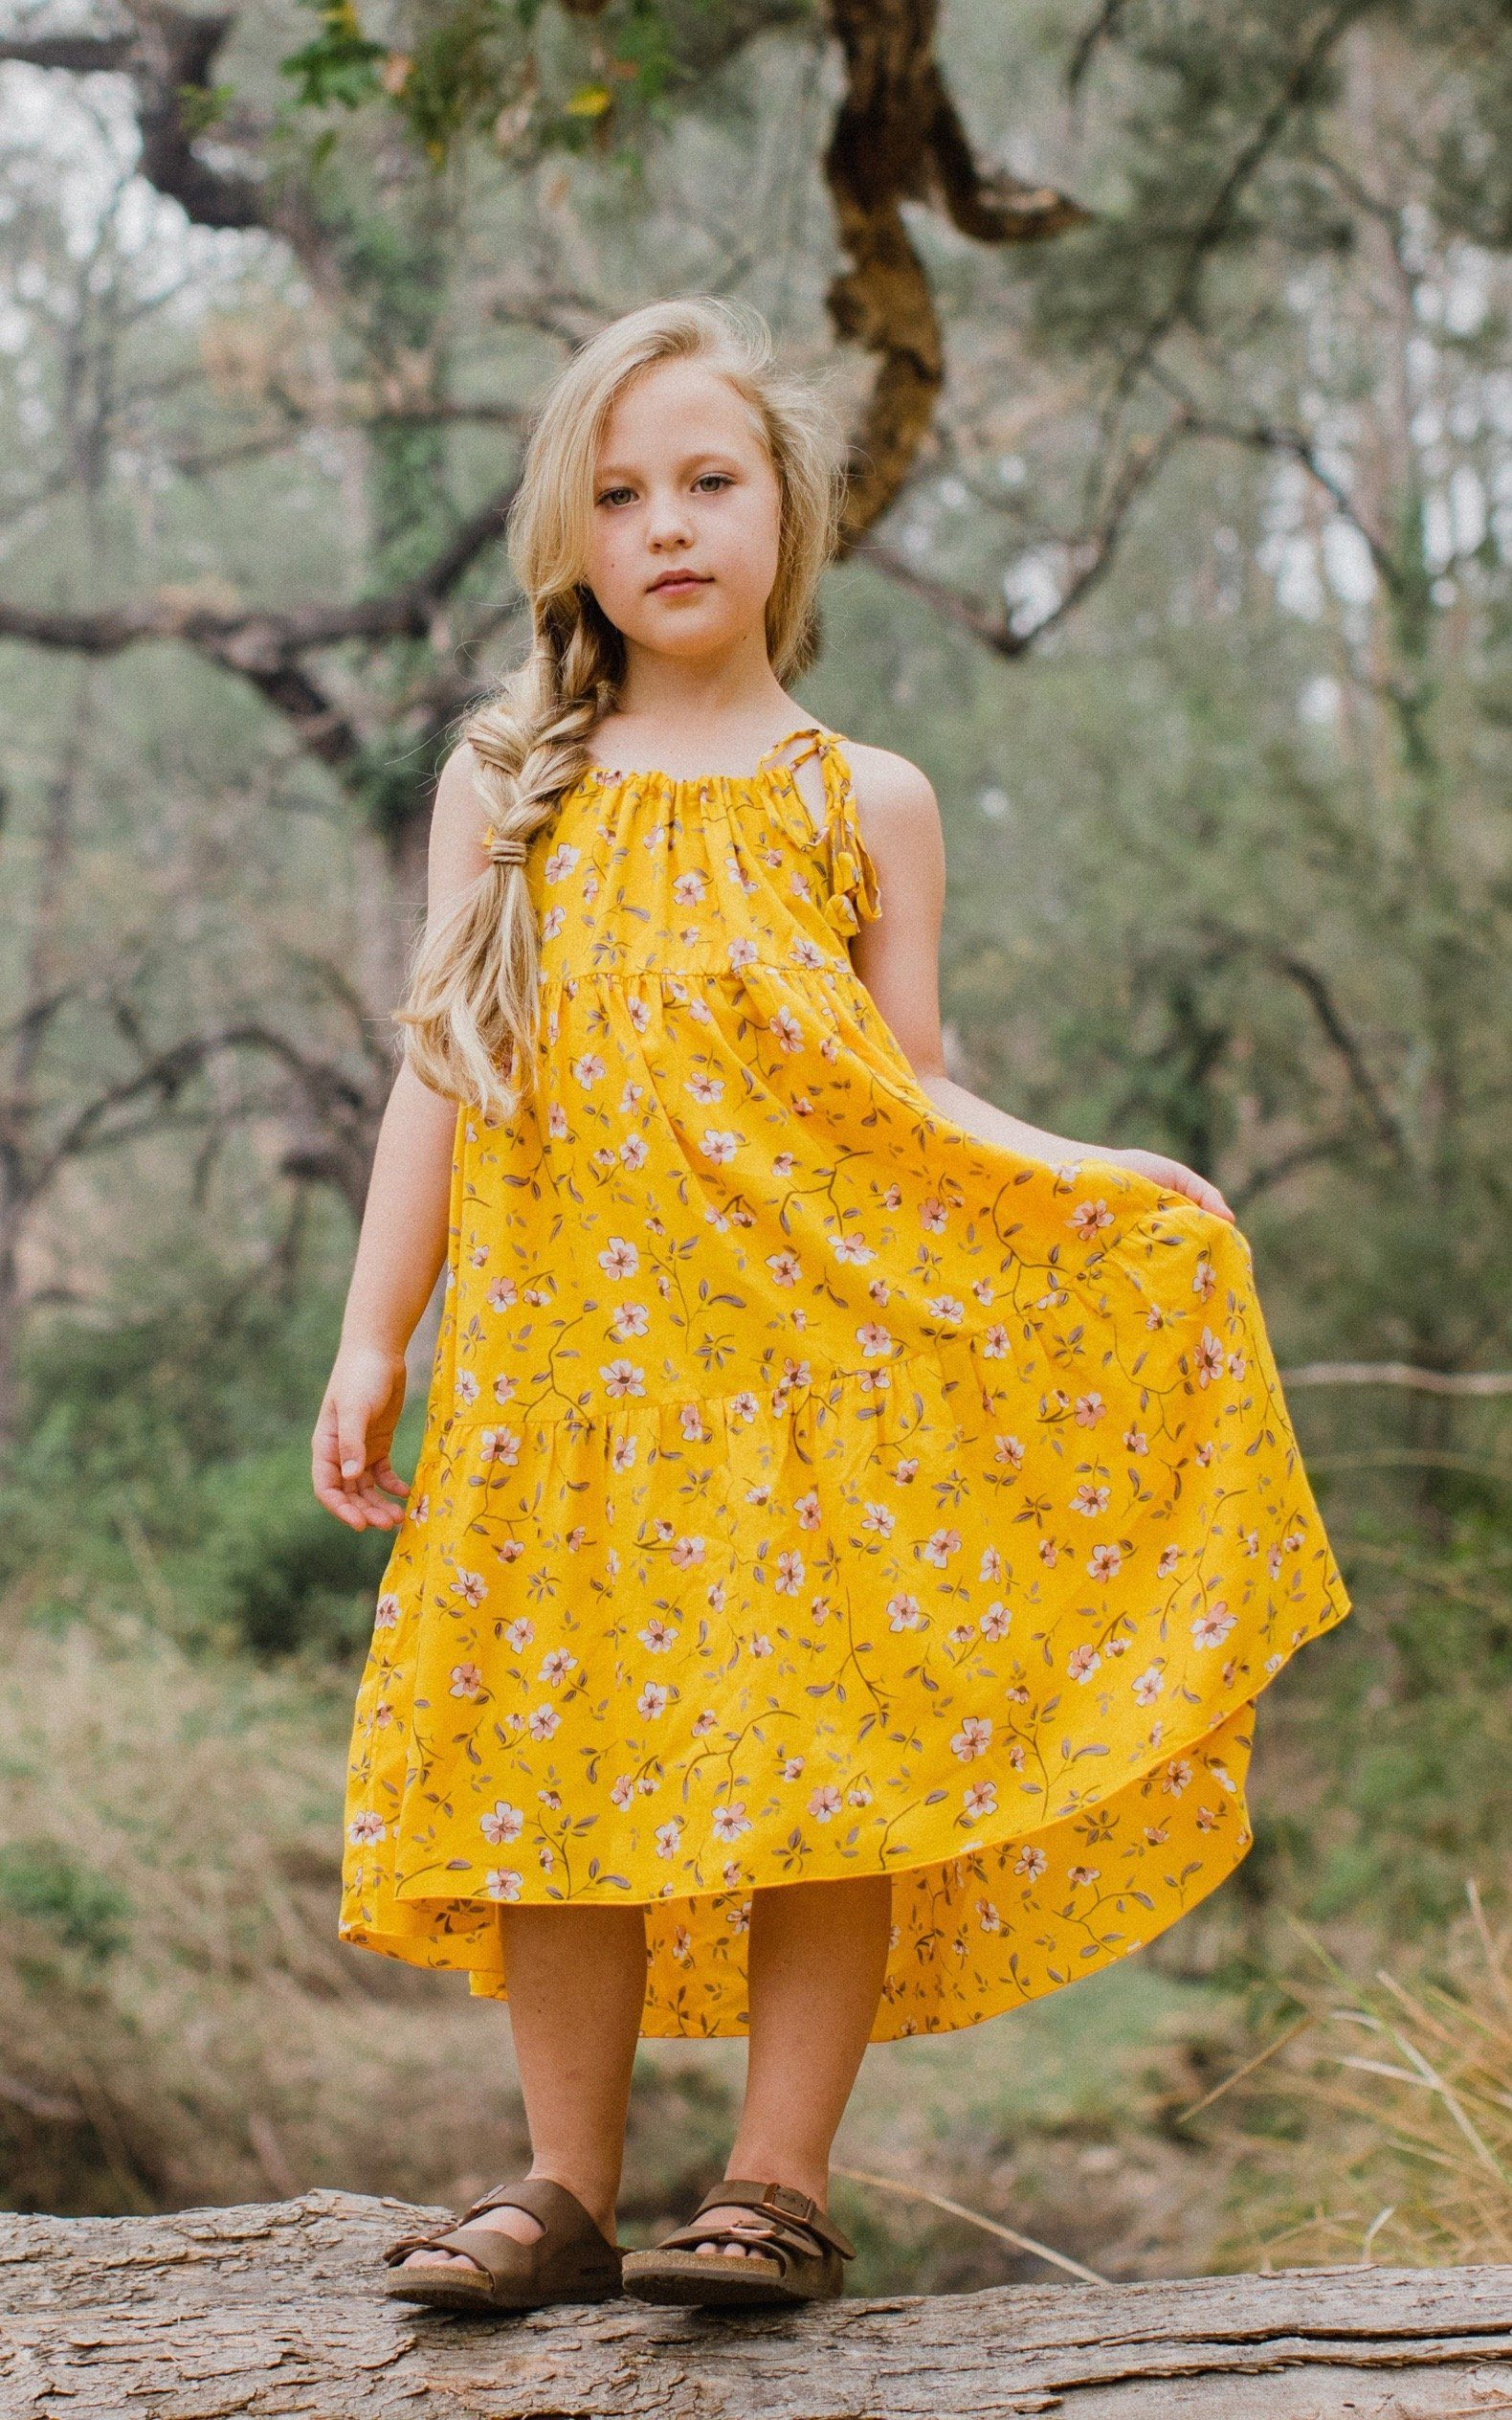 Zara Dress ⁓ Mustard Jewel Girls dresses Wild Blossoms